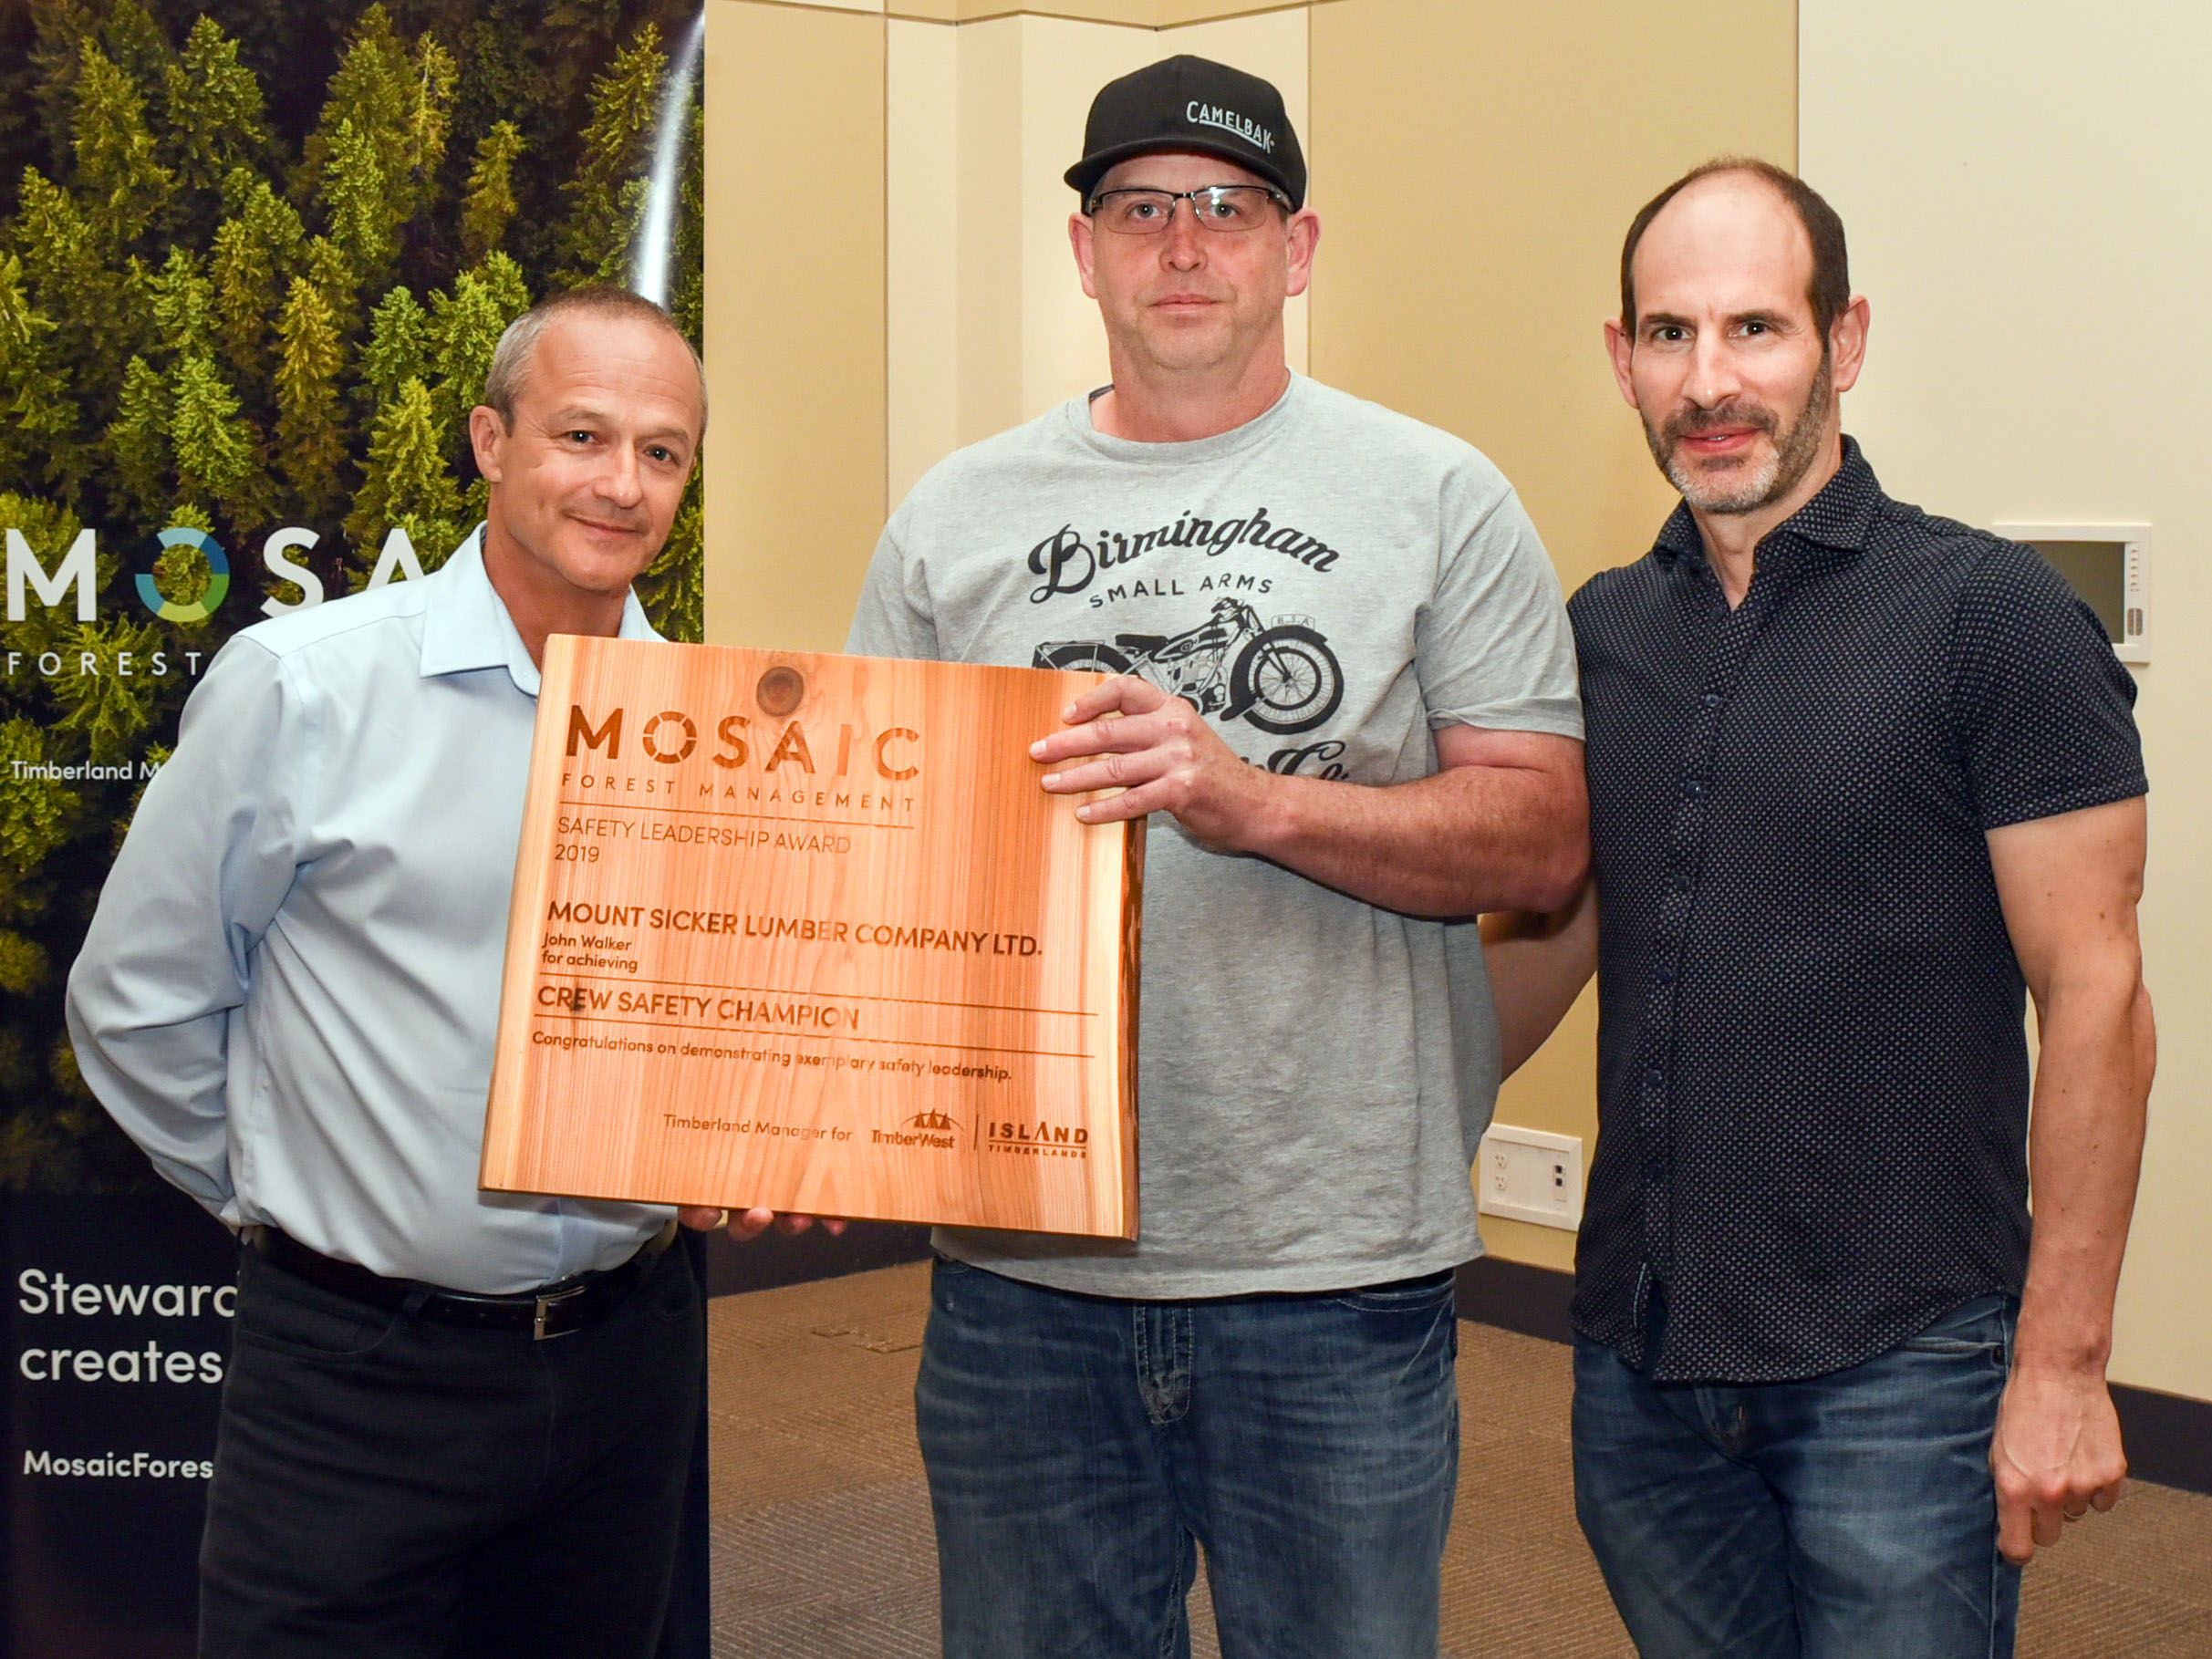 (l to r) John Shearing, Mosaic's Director, Health and Safety, with award recipient, John Walker, of Mount Sicker Lumber Company Ltd. and Mosaic's President and Chief Executive Officer, Jeff Zweig.